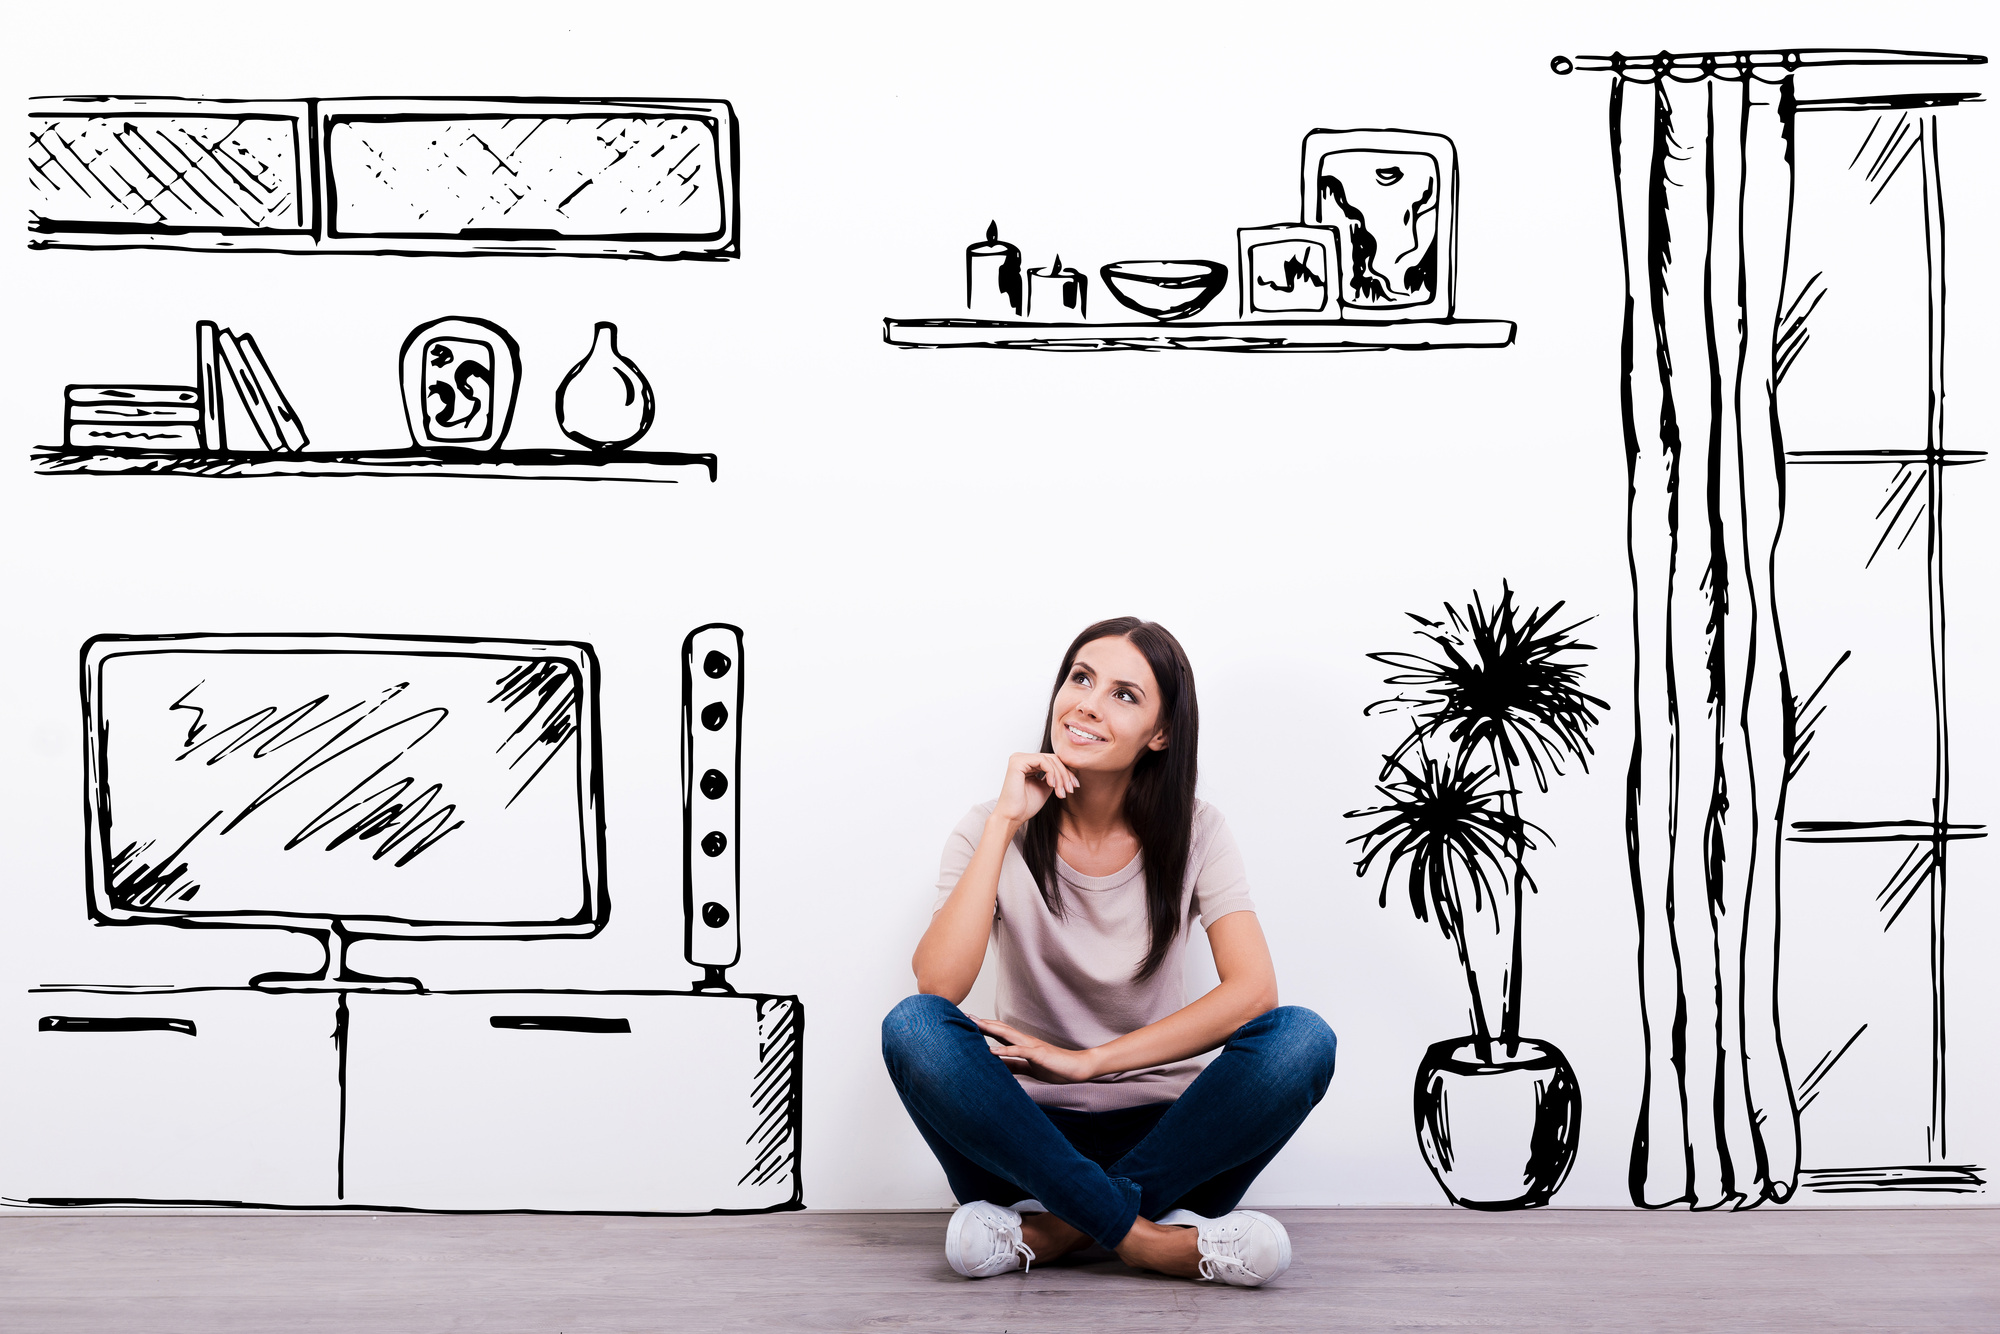 Our Guide to Getting Comfortable and Healthy in Your New Home